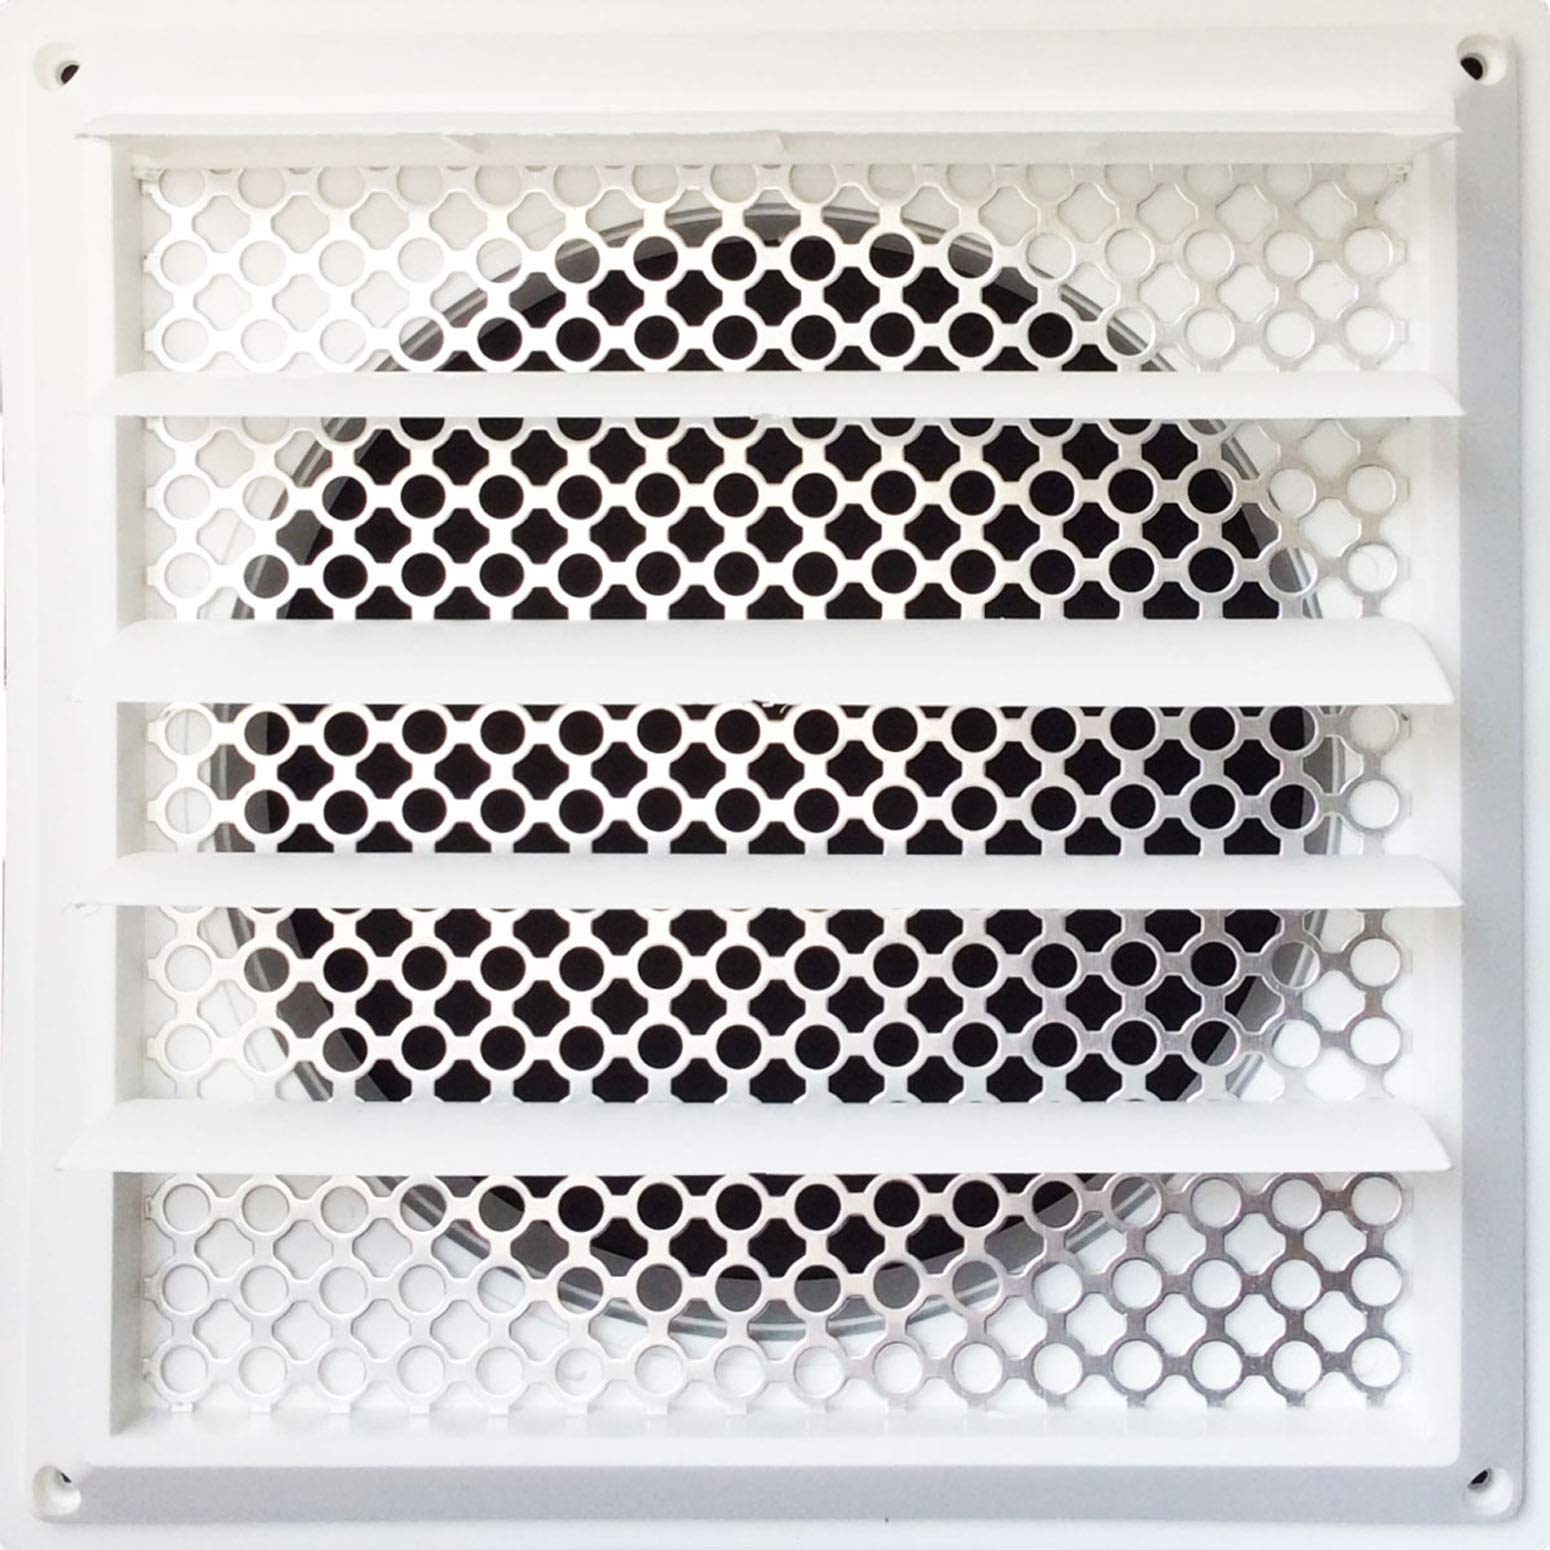 New Aroma Trees Dryer Vent Bird Stop - Dryer Vent Grill - Pest Guard - Stops Birds Nesting In Dryer Vents and Bathroom Exhaust Vents Pipe, Customizable 3'' - 8'' Louver Vent Hood Cover Guard by Aroma Trees (Image #1)